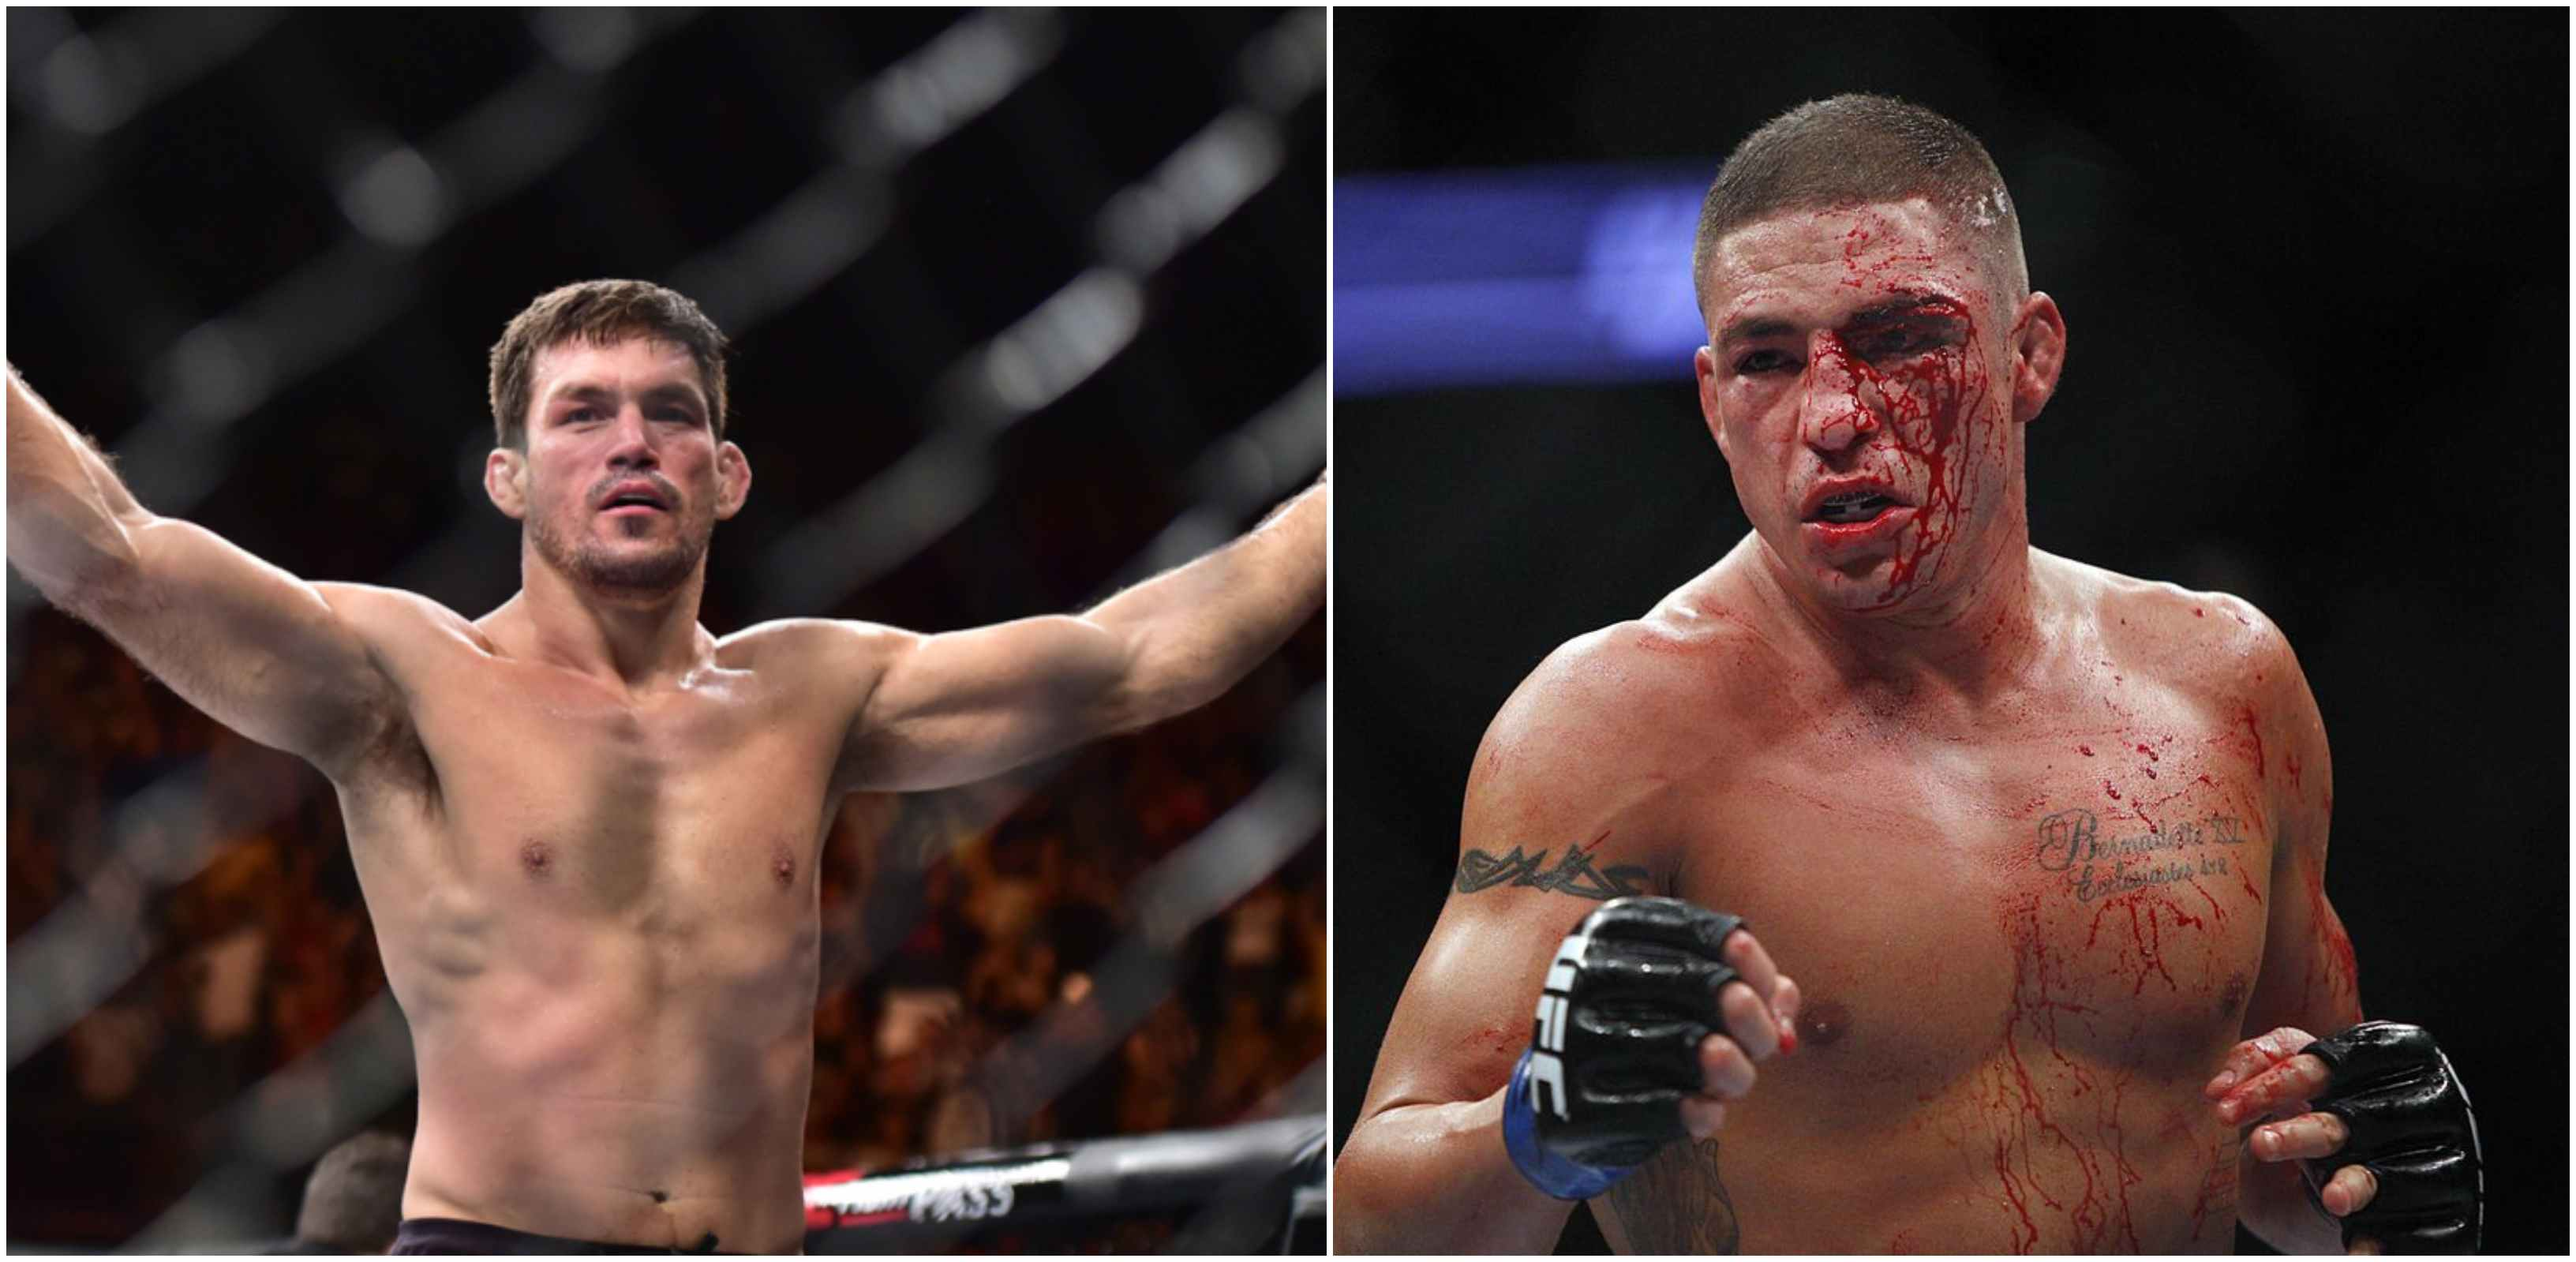 Diego Sanchez all for Demian Maia fight: Let us dance! - Maia